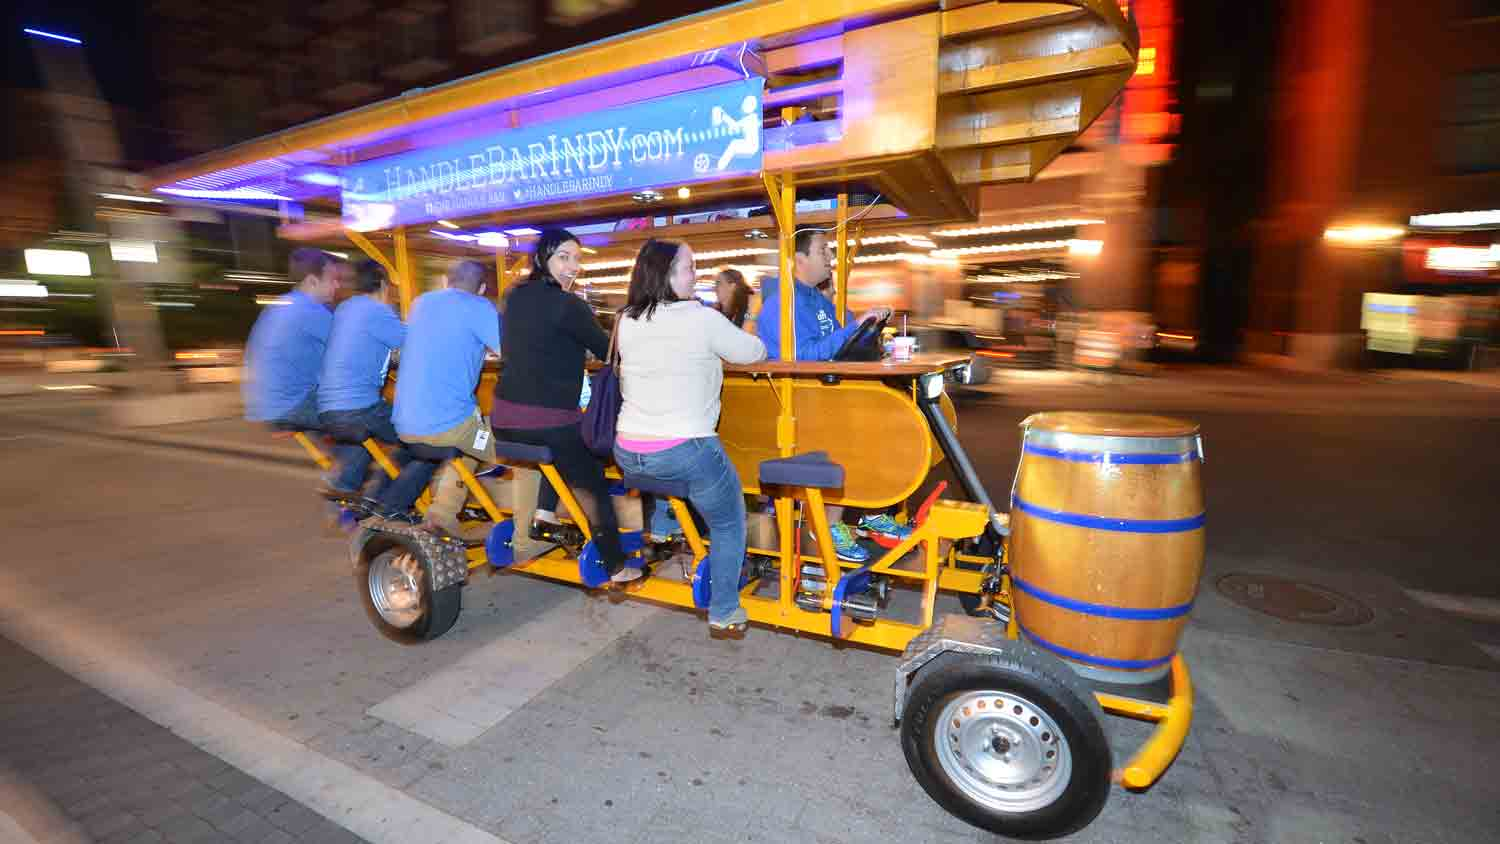 The HandleBar Indy Pedal Pub 1